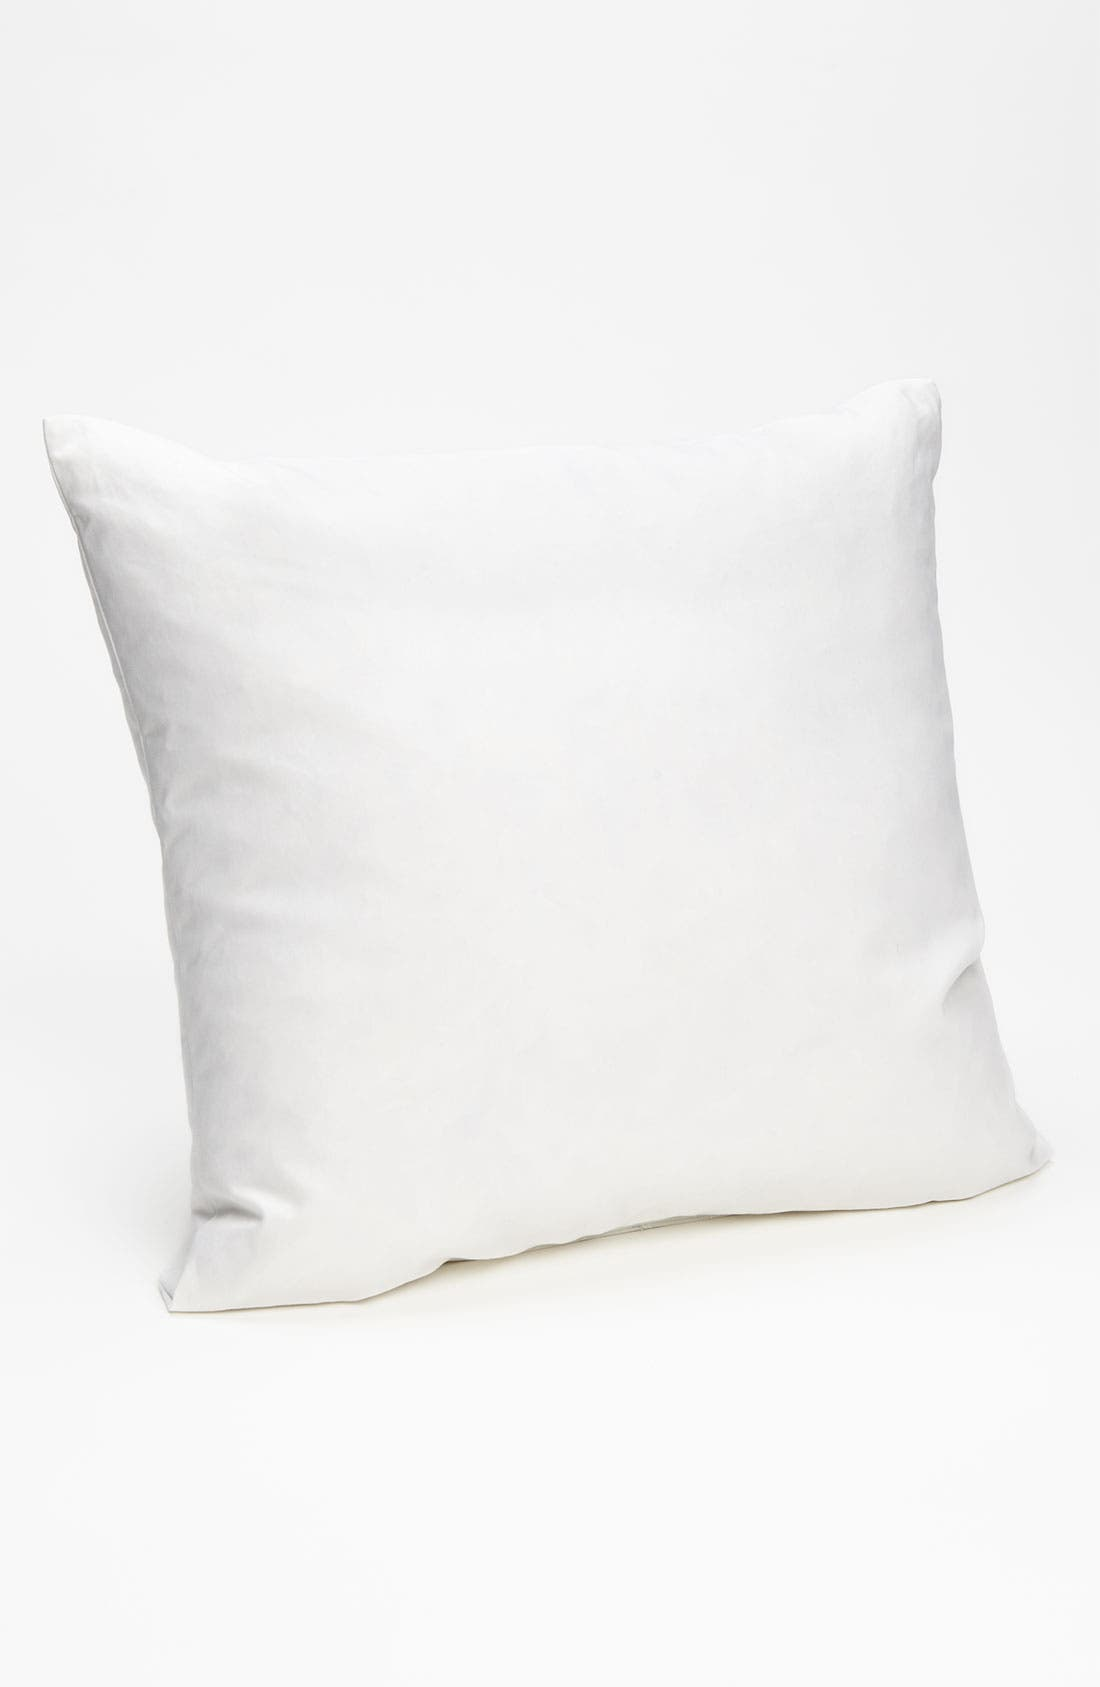 Main Image - Nordstrom at Home 18x18 Feather & Down Pillow Insert (2 for $24)